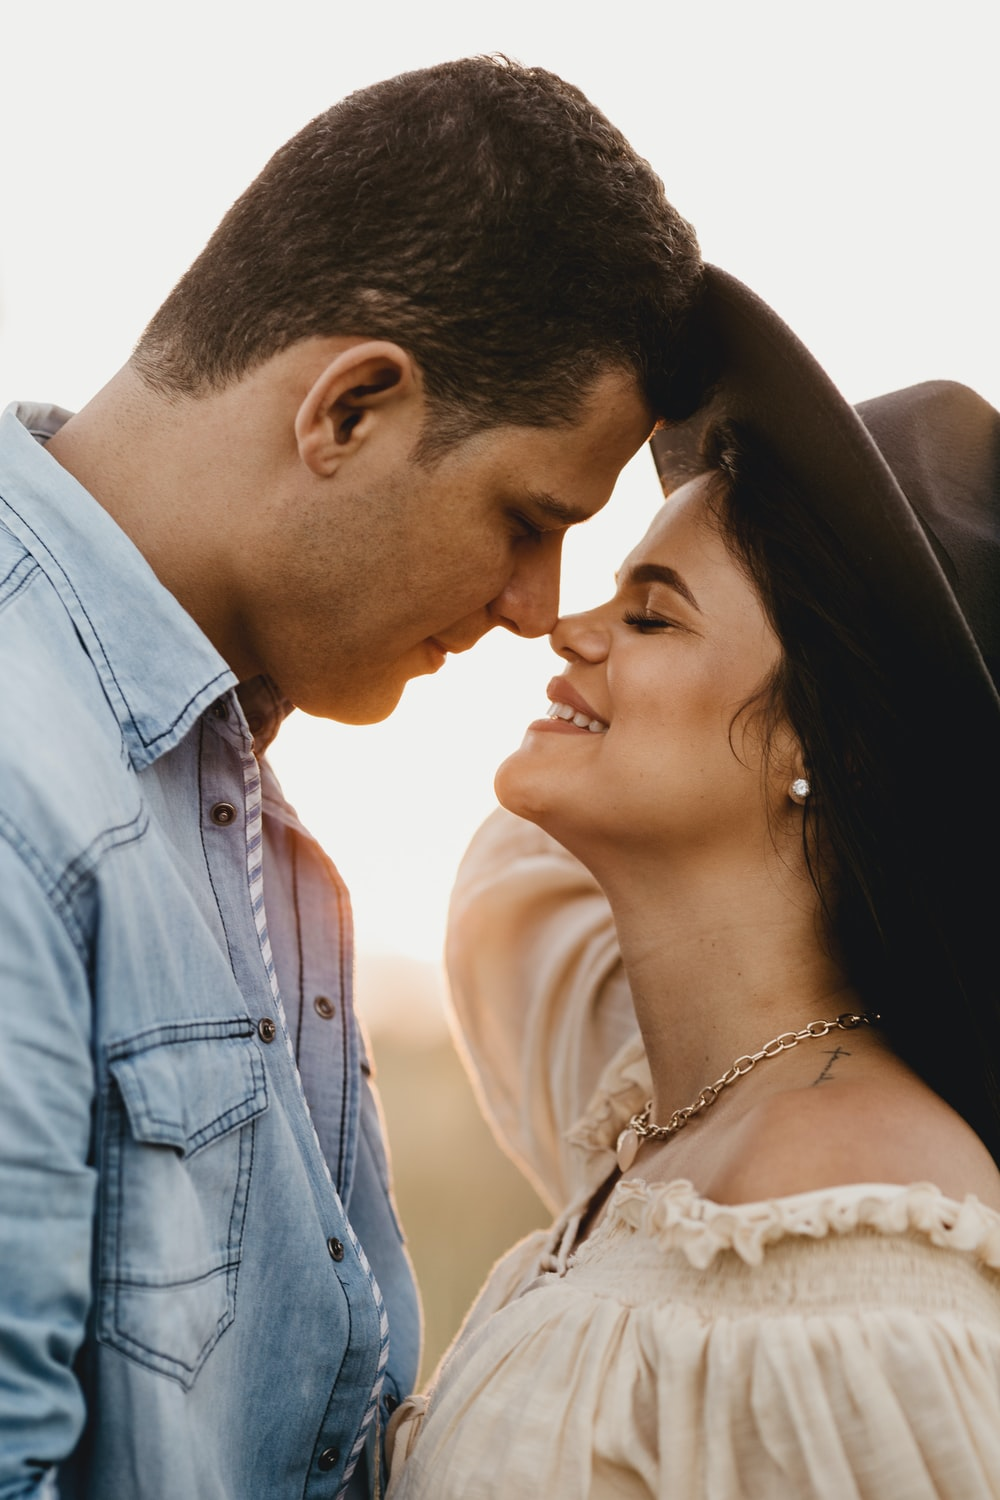 man in blue denim button up shirt kissing woman in white floral dress